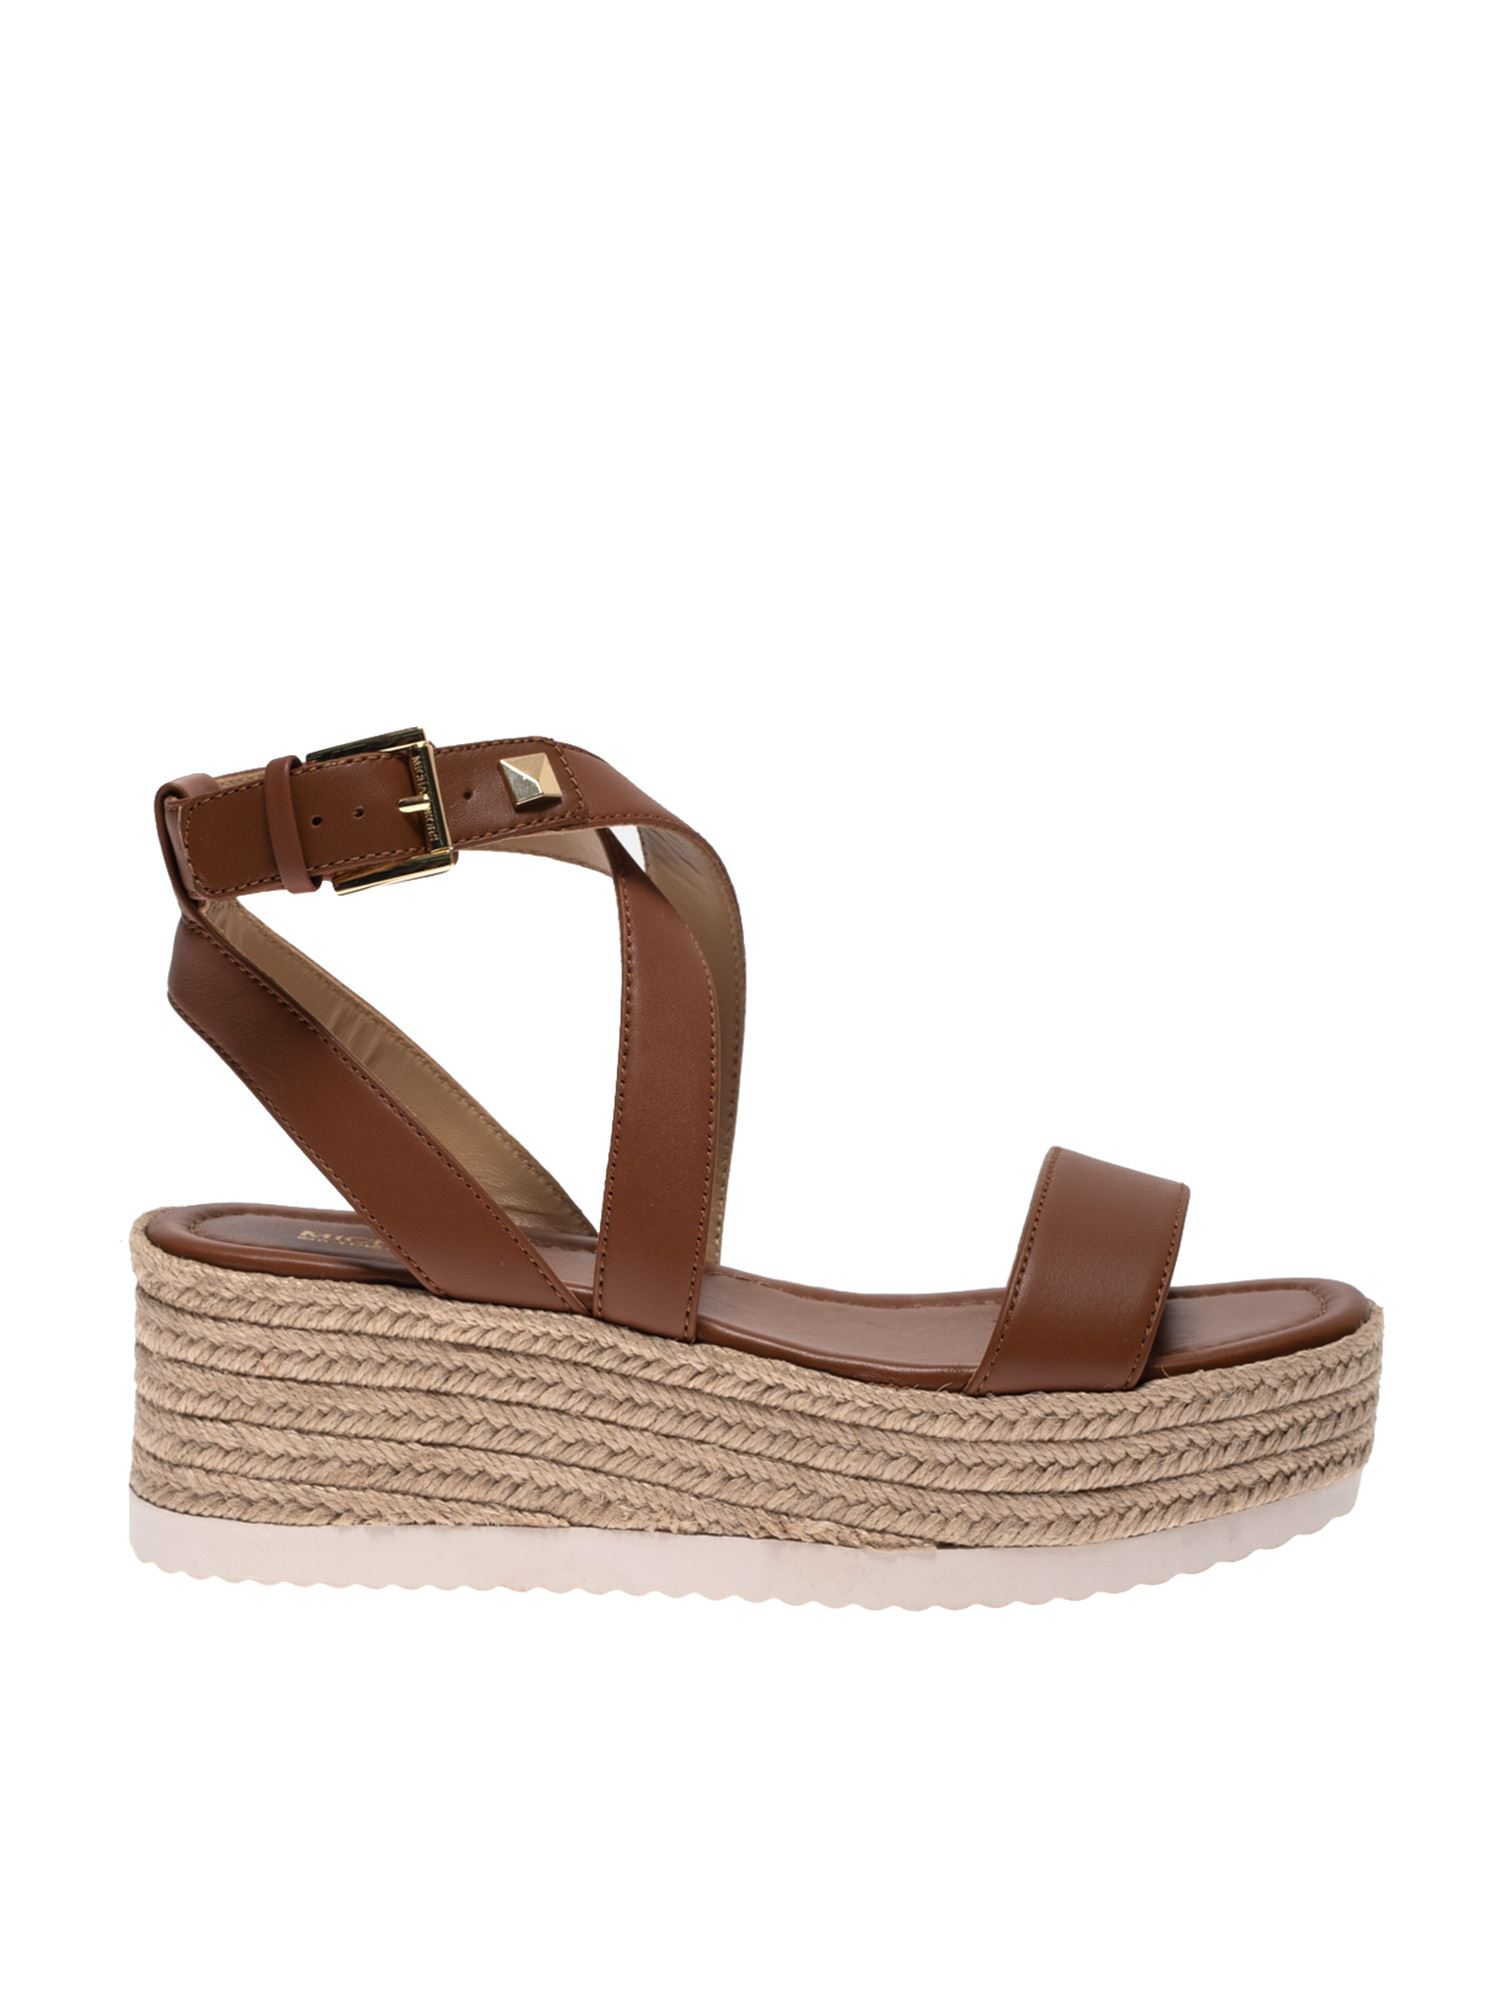 Michael Kors LOWRY SANDALS IN BROWN